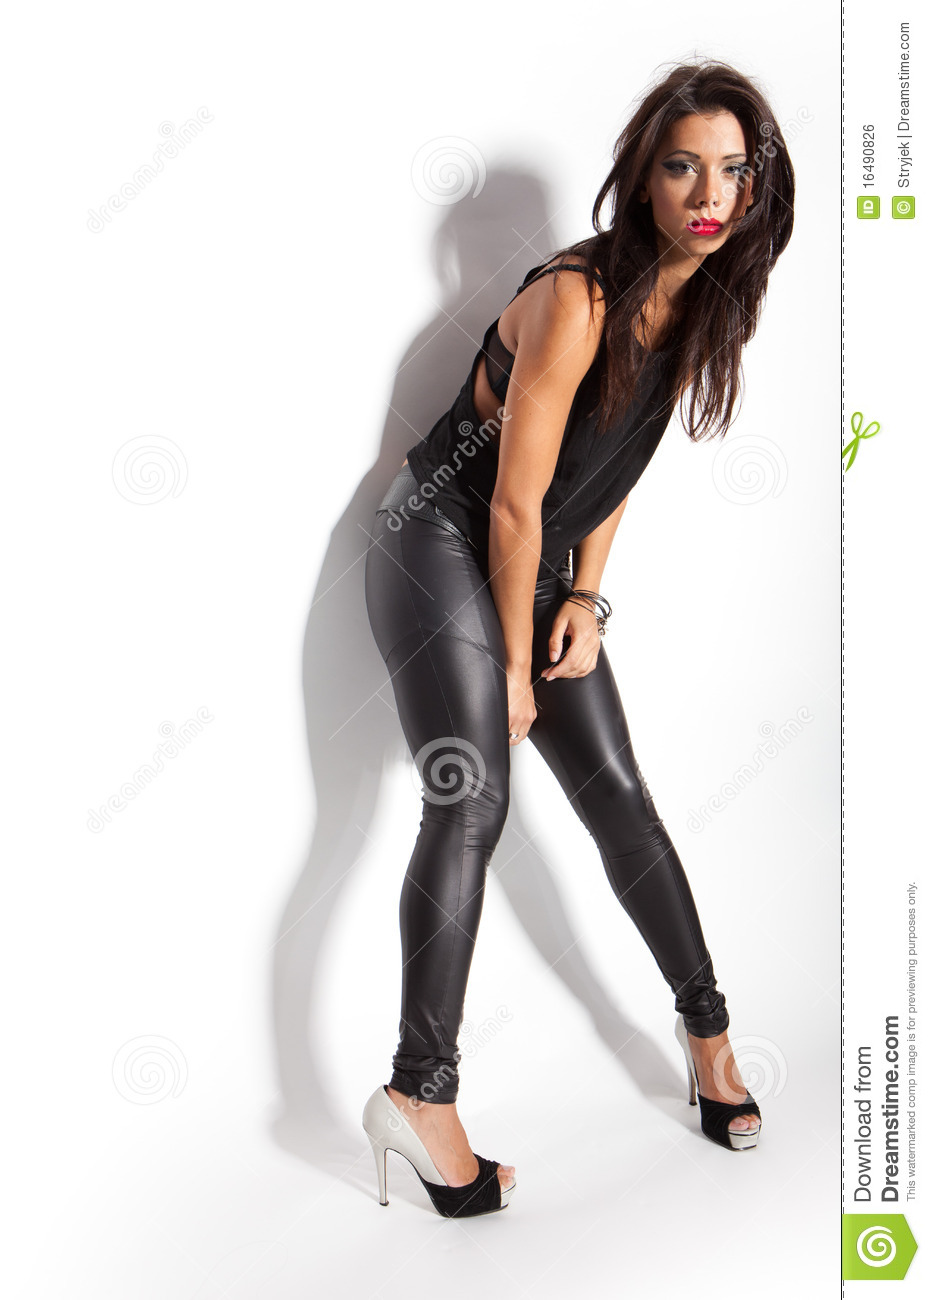 Female Fashion Model Stock Photo. Image Of Contact, Adult